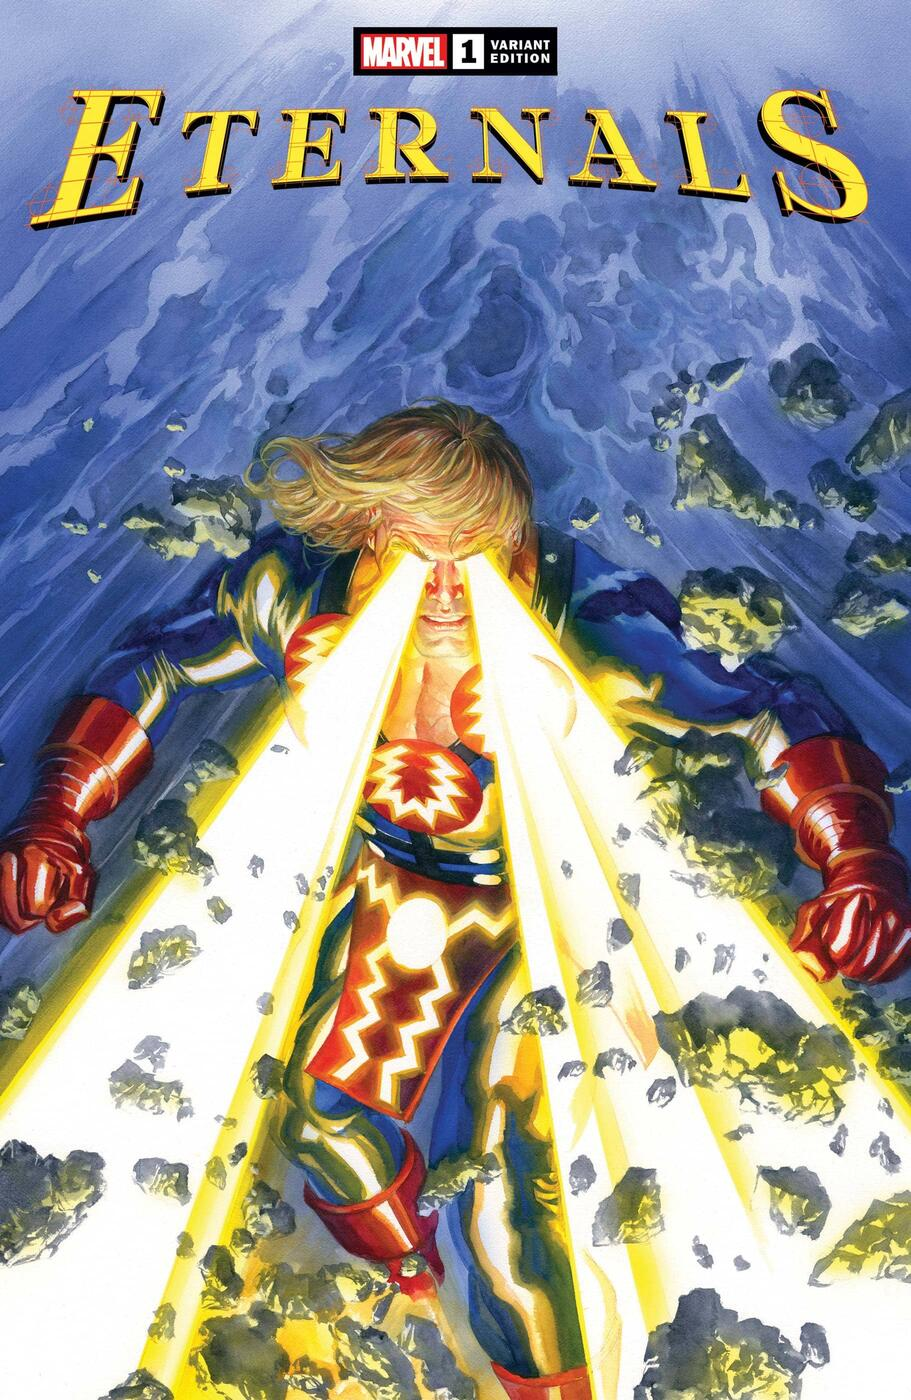 ETERNALS #1 variant cover by Alex Ross